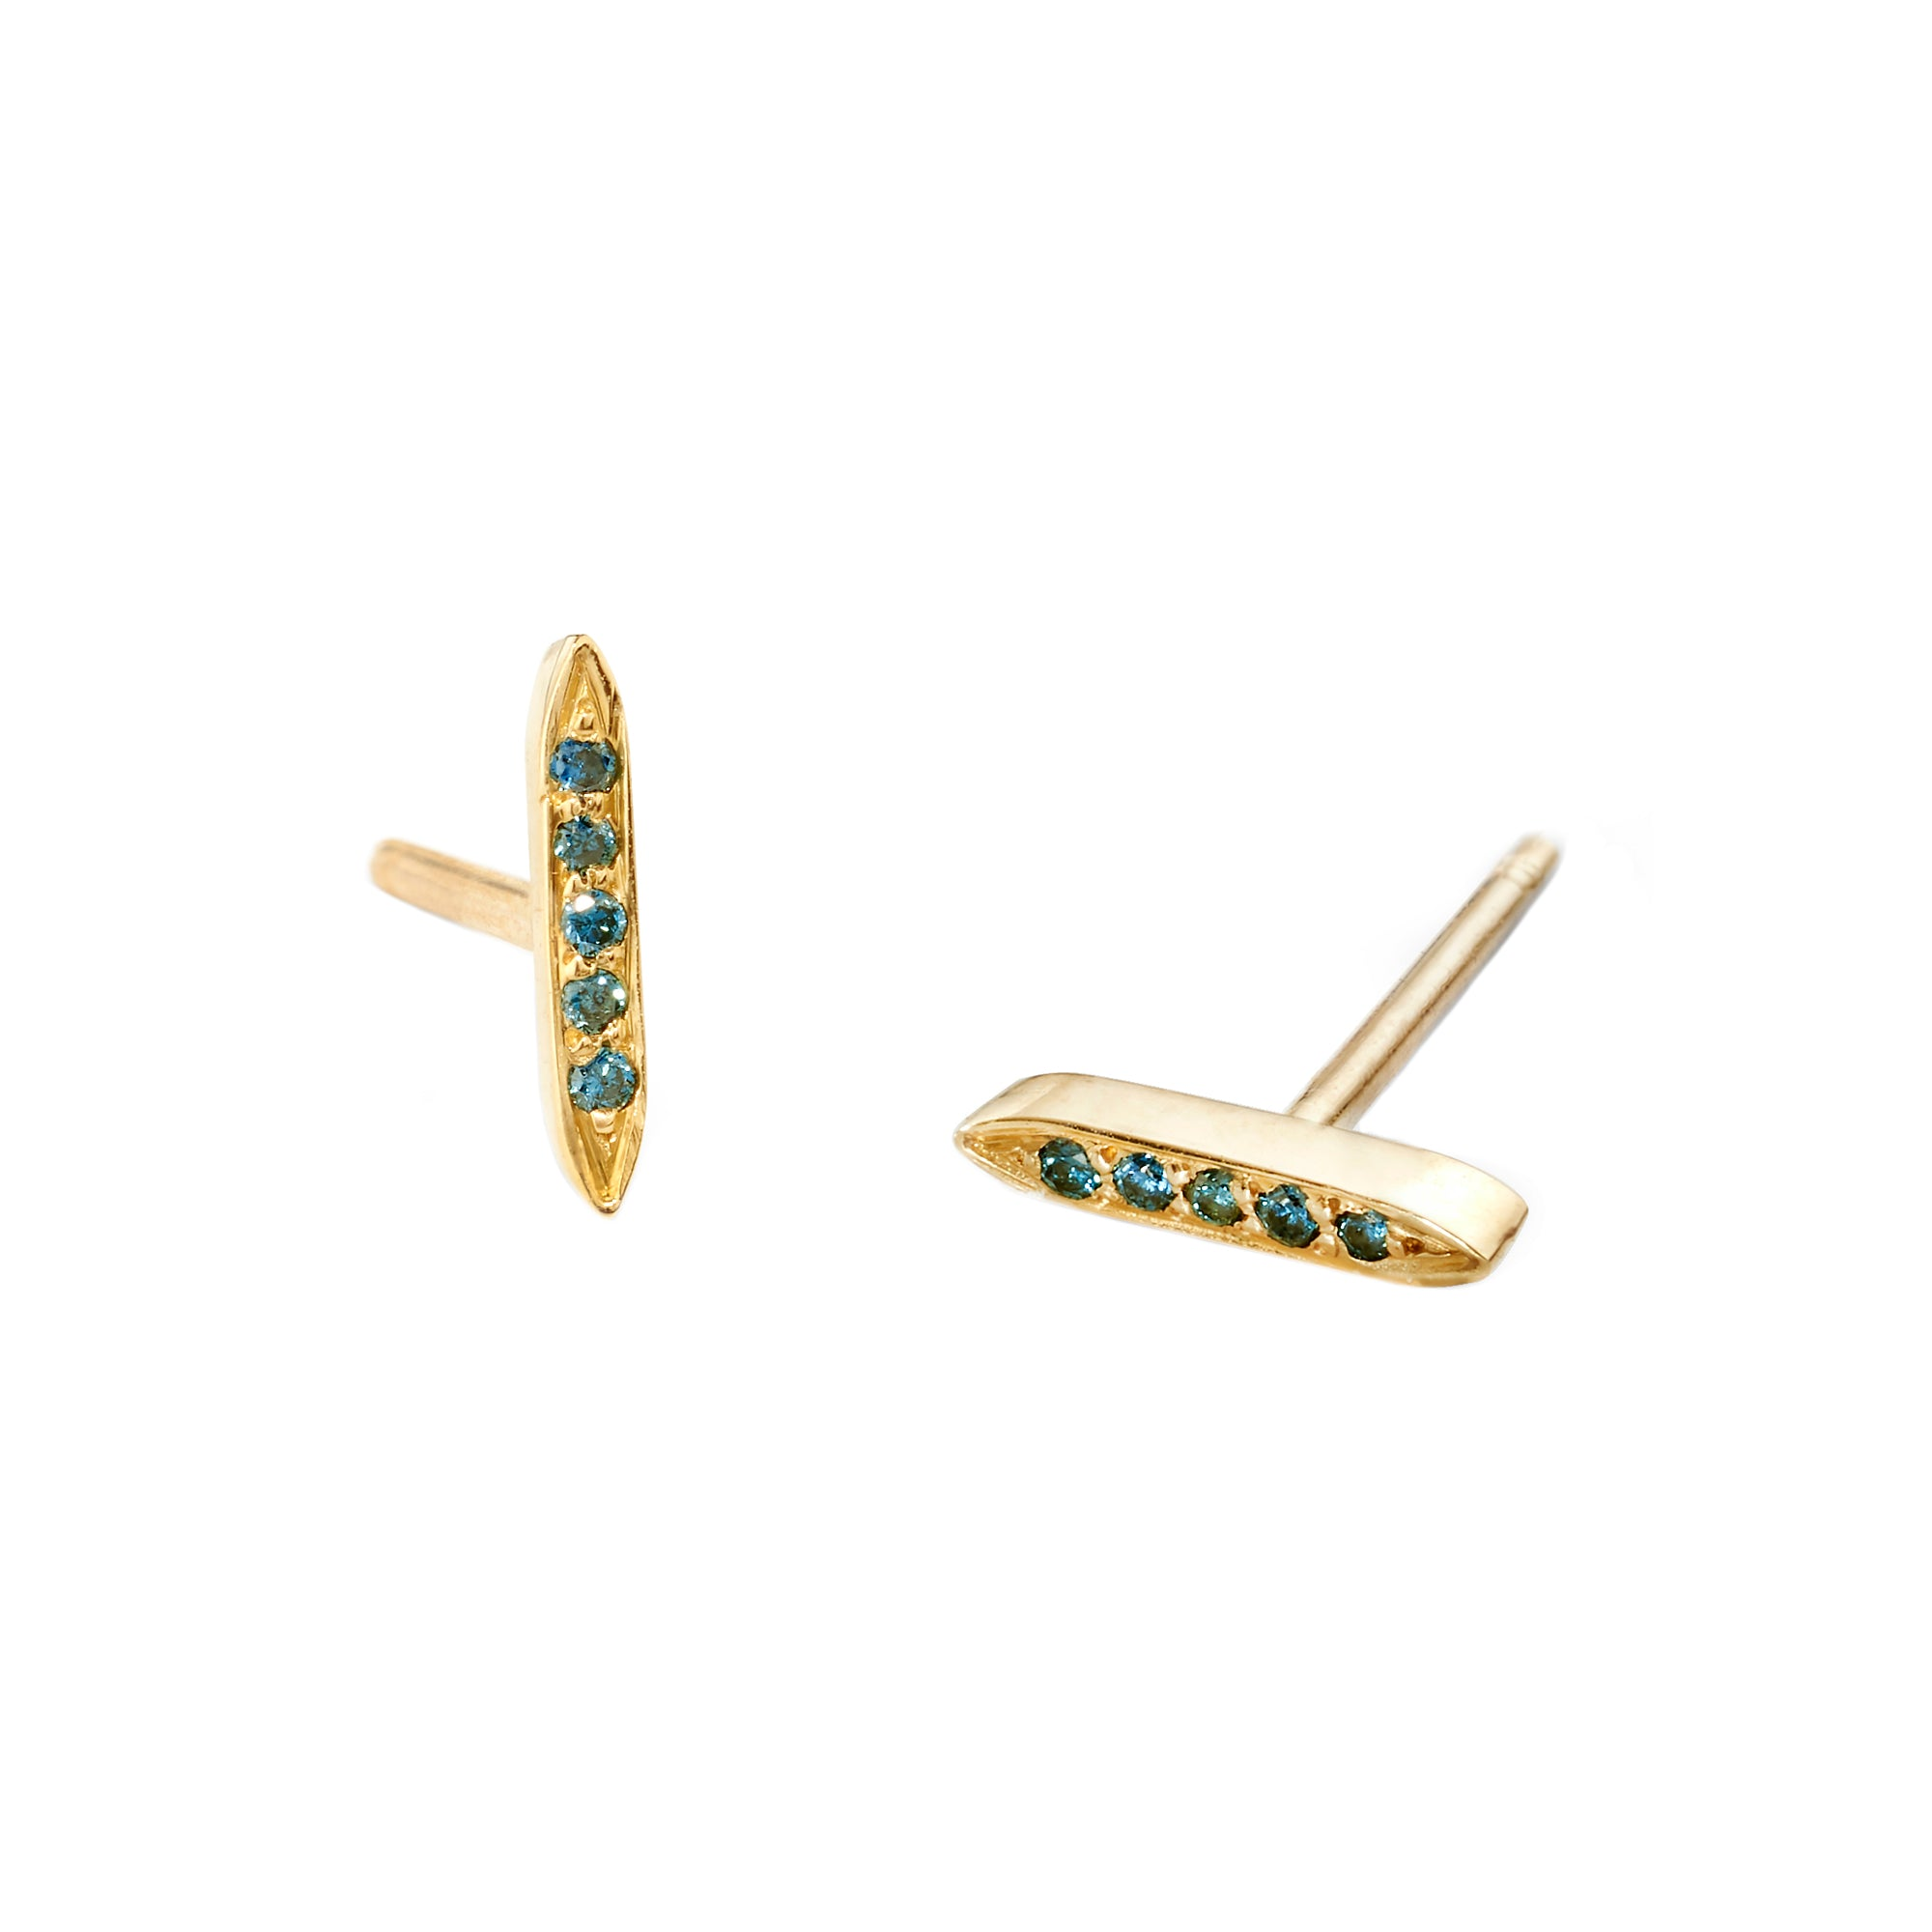 Blue Diamond Mini Goddess Studs by Tara Hirshberg for Broken English Jewelry